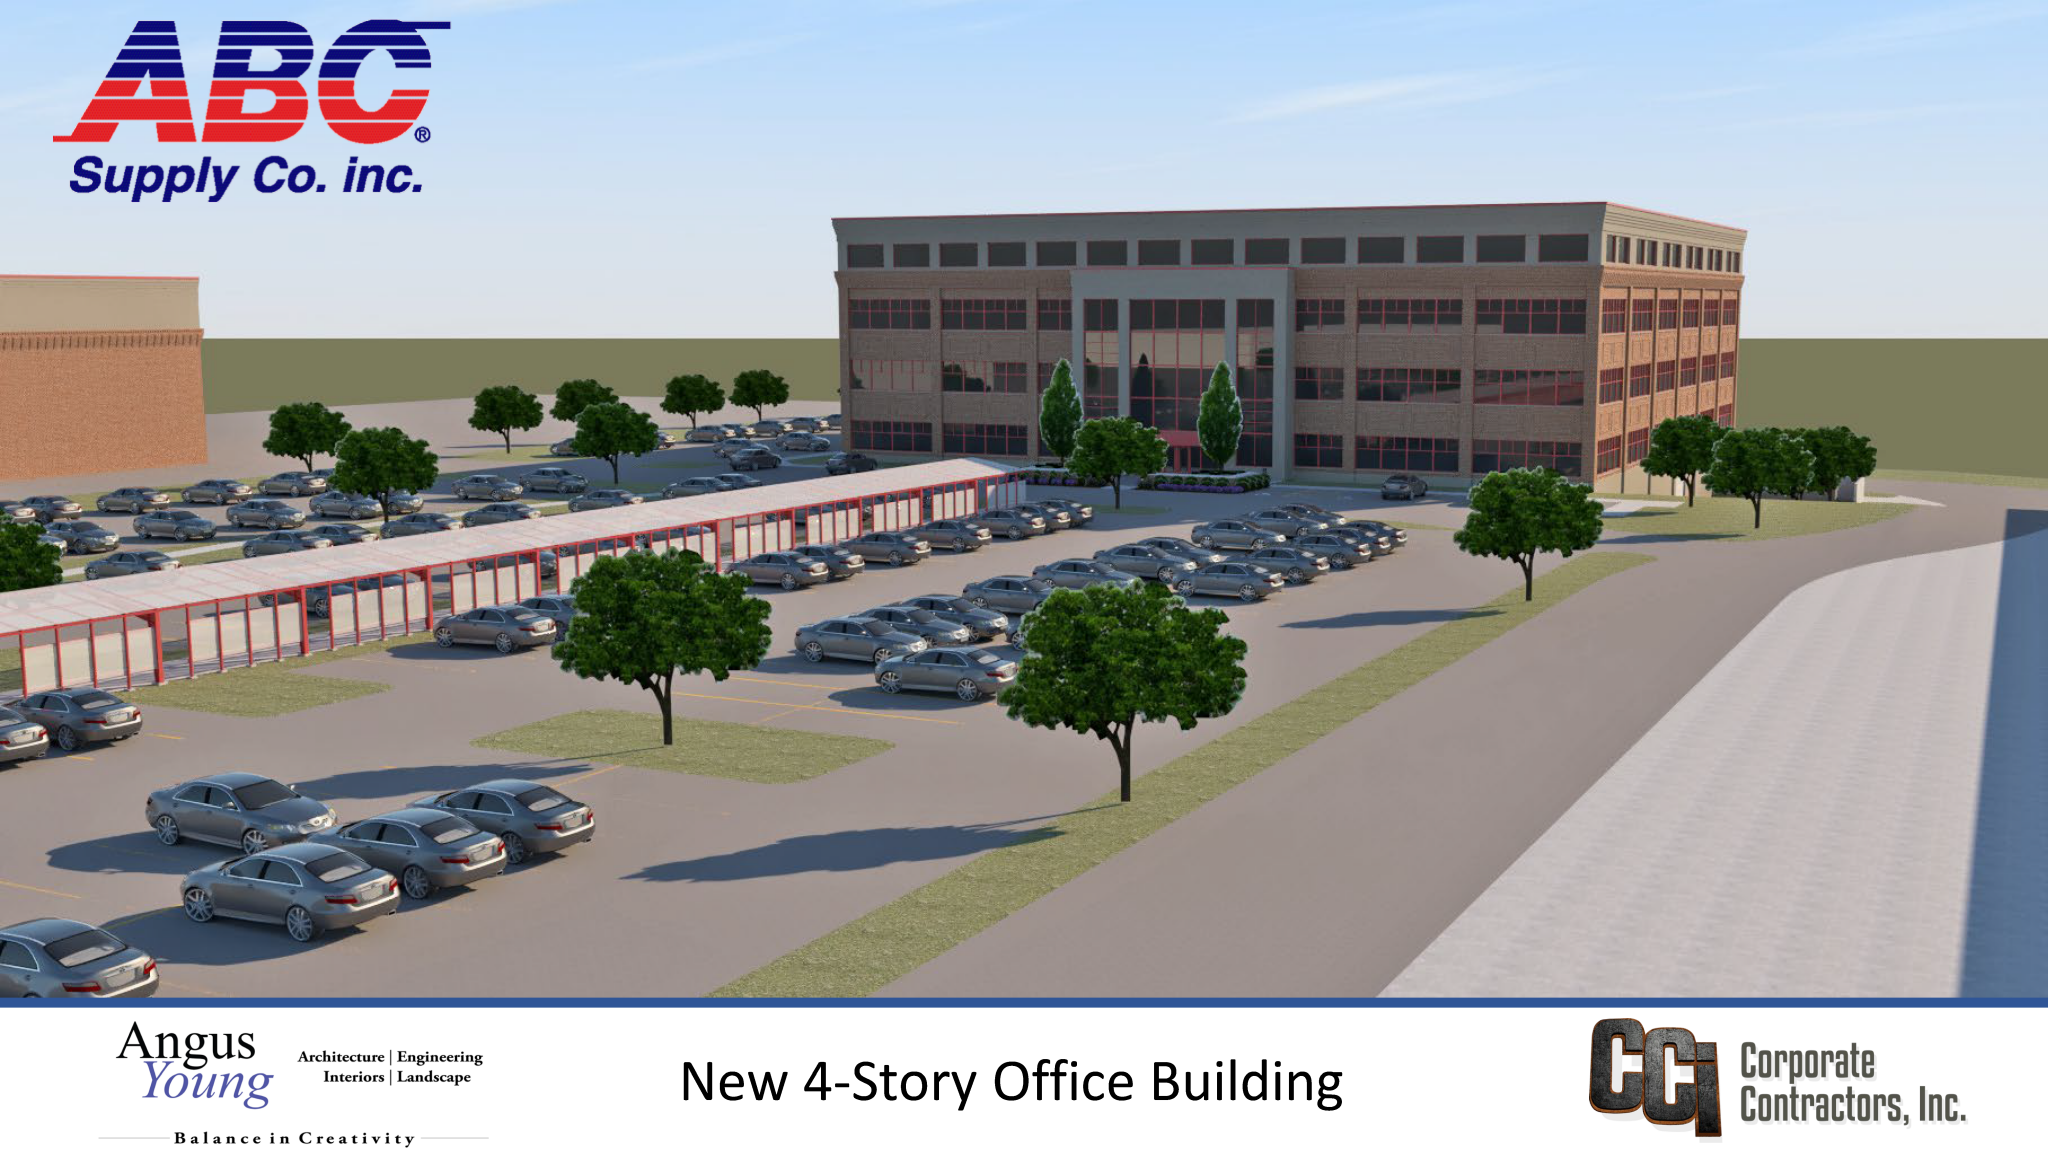 CCI to construct 4-story office building for ABC Supply